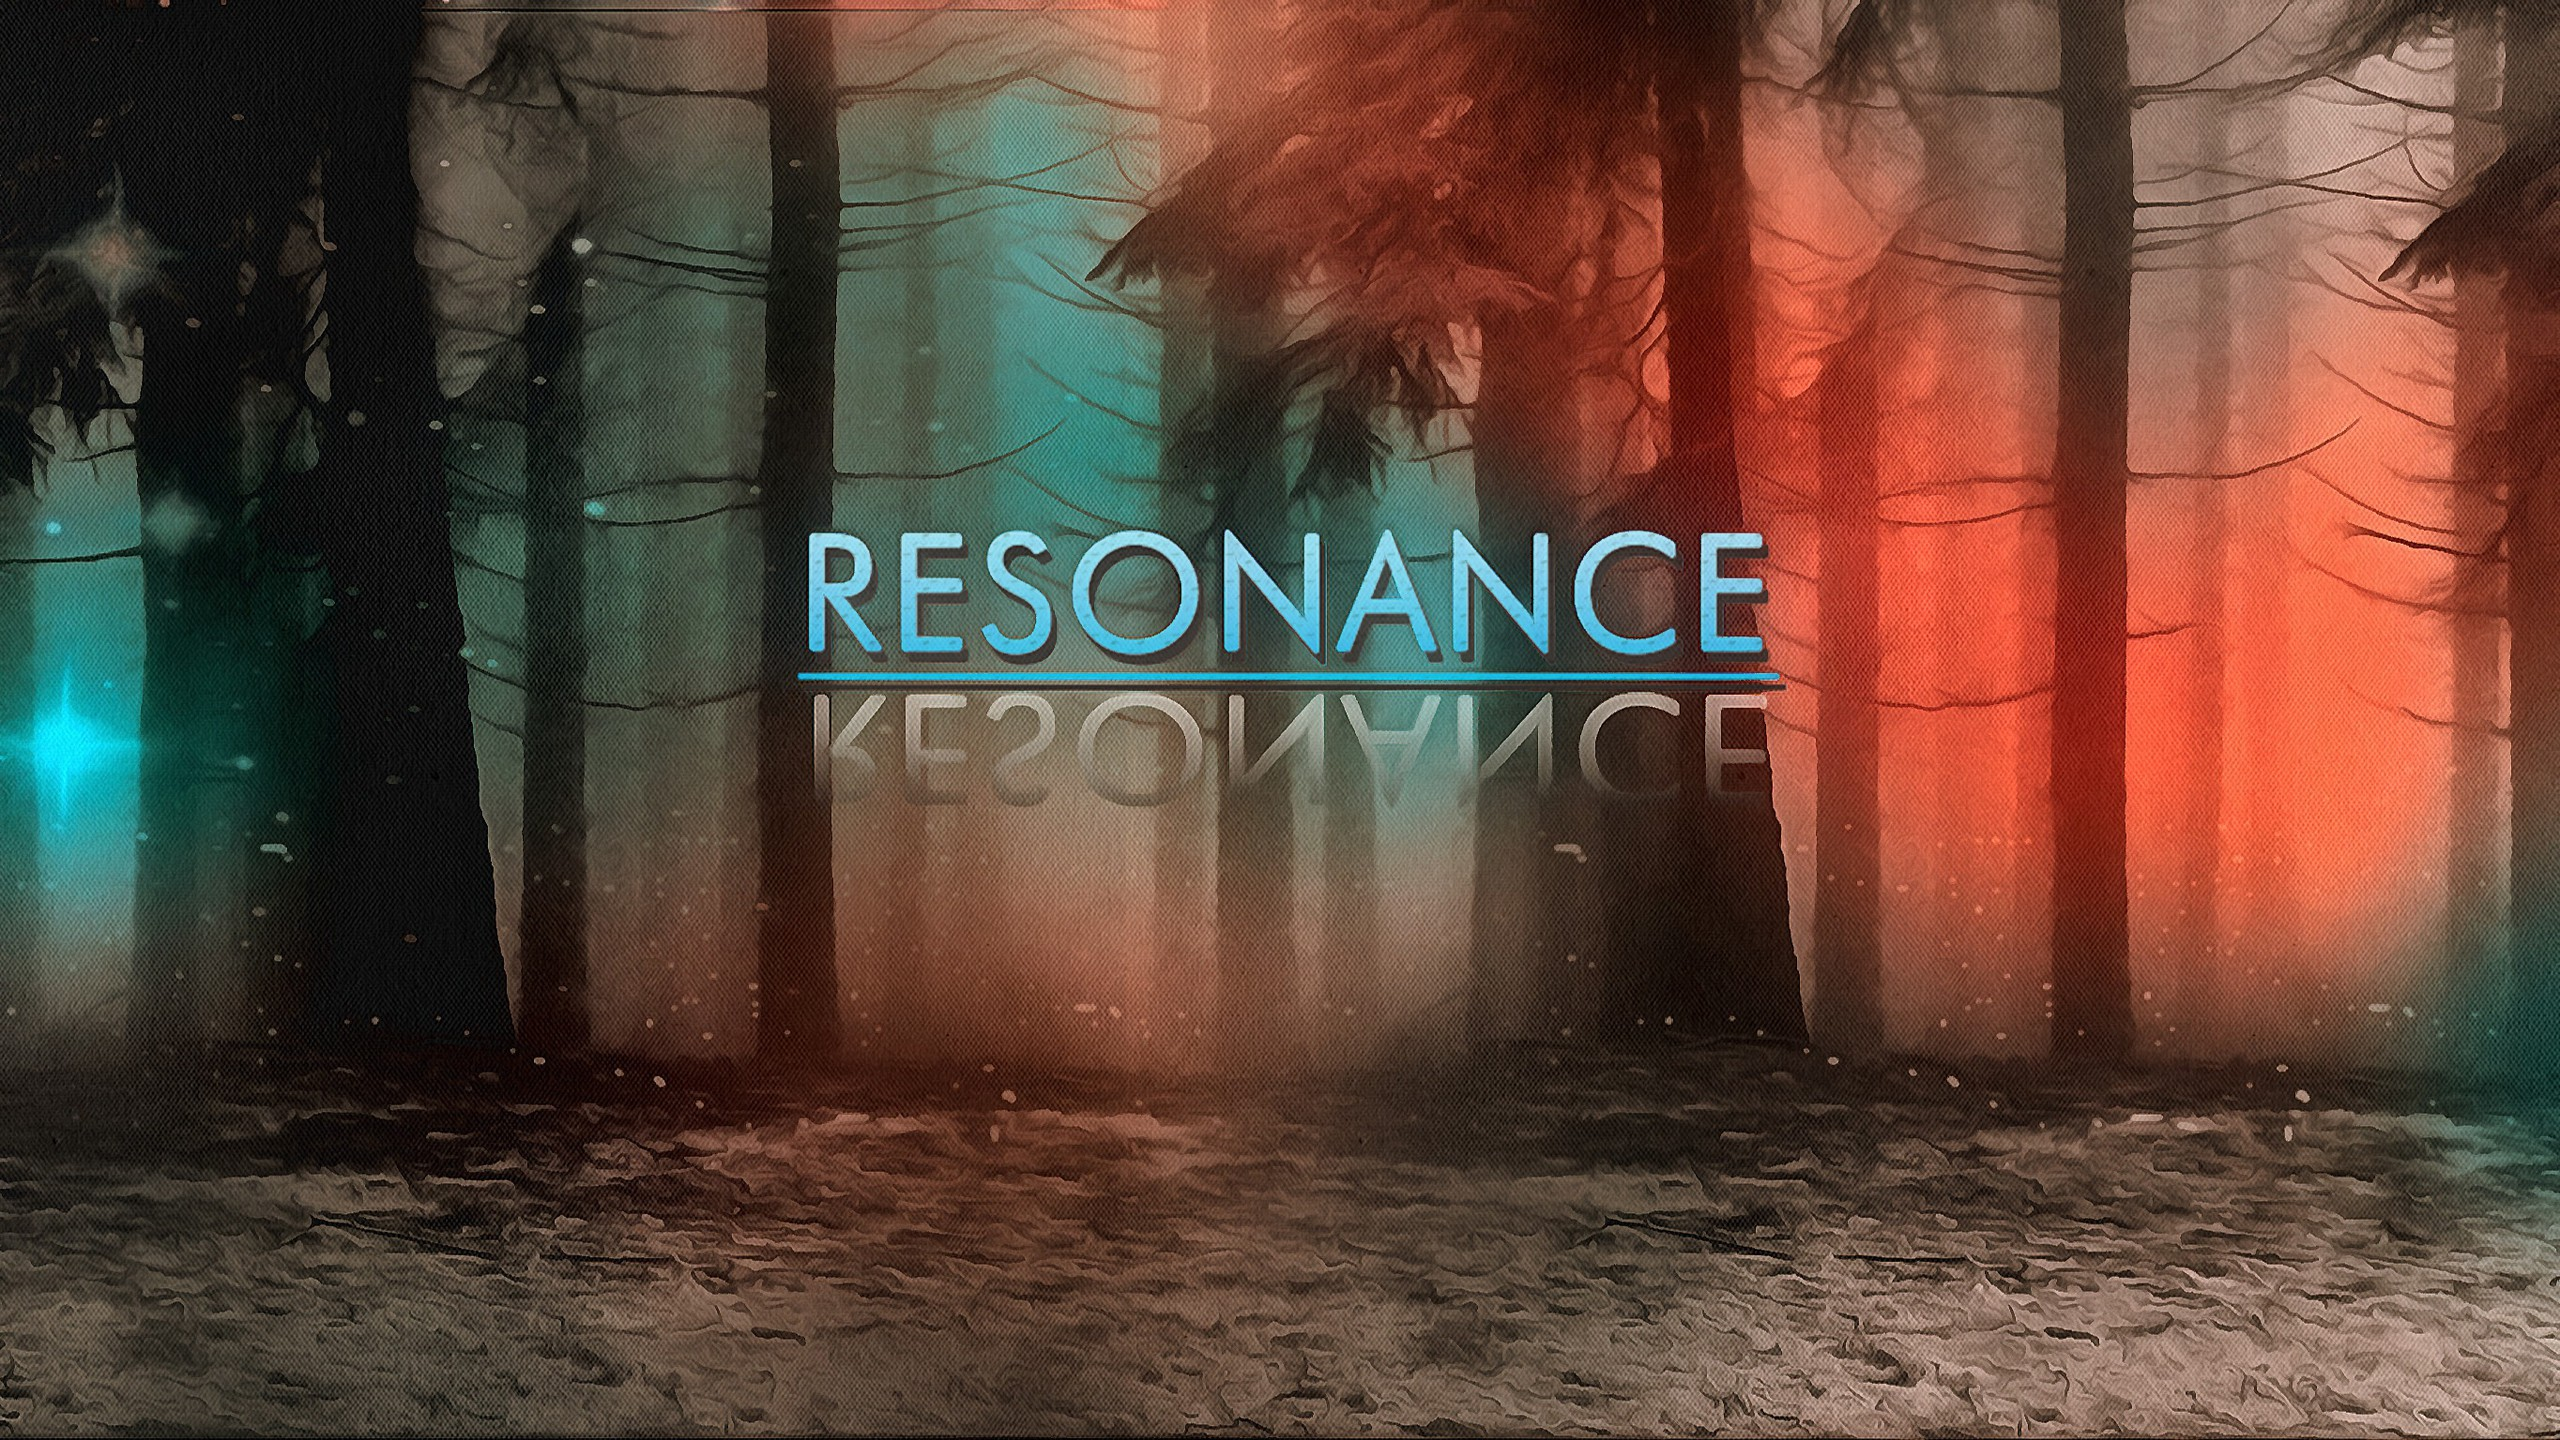 Resonance social media banners/backgrounds